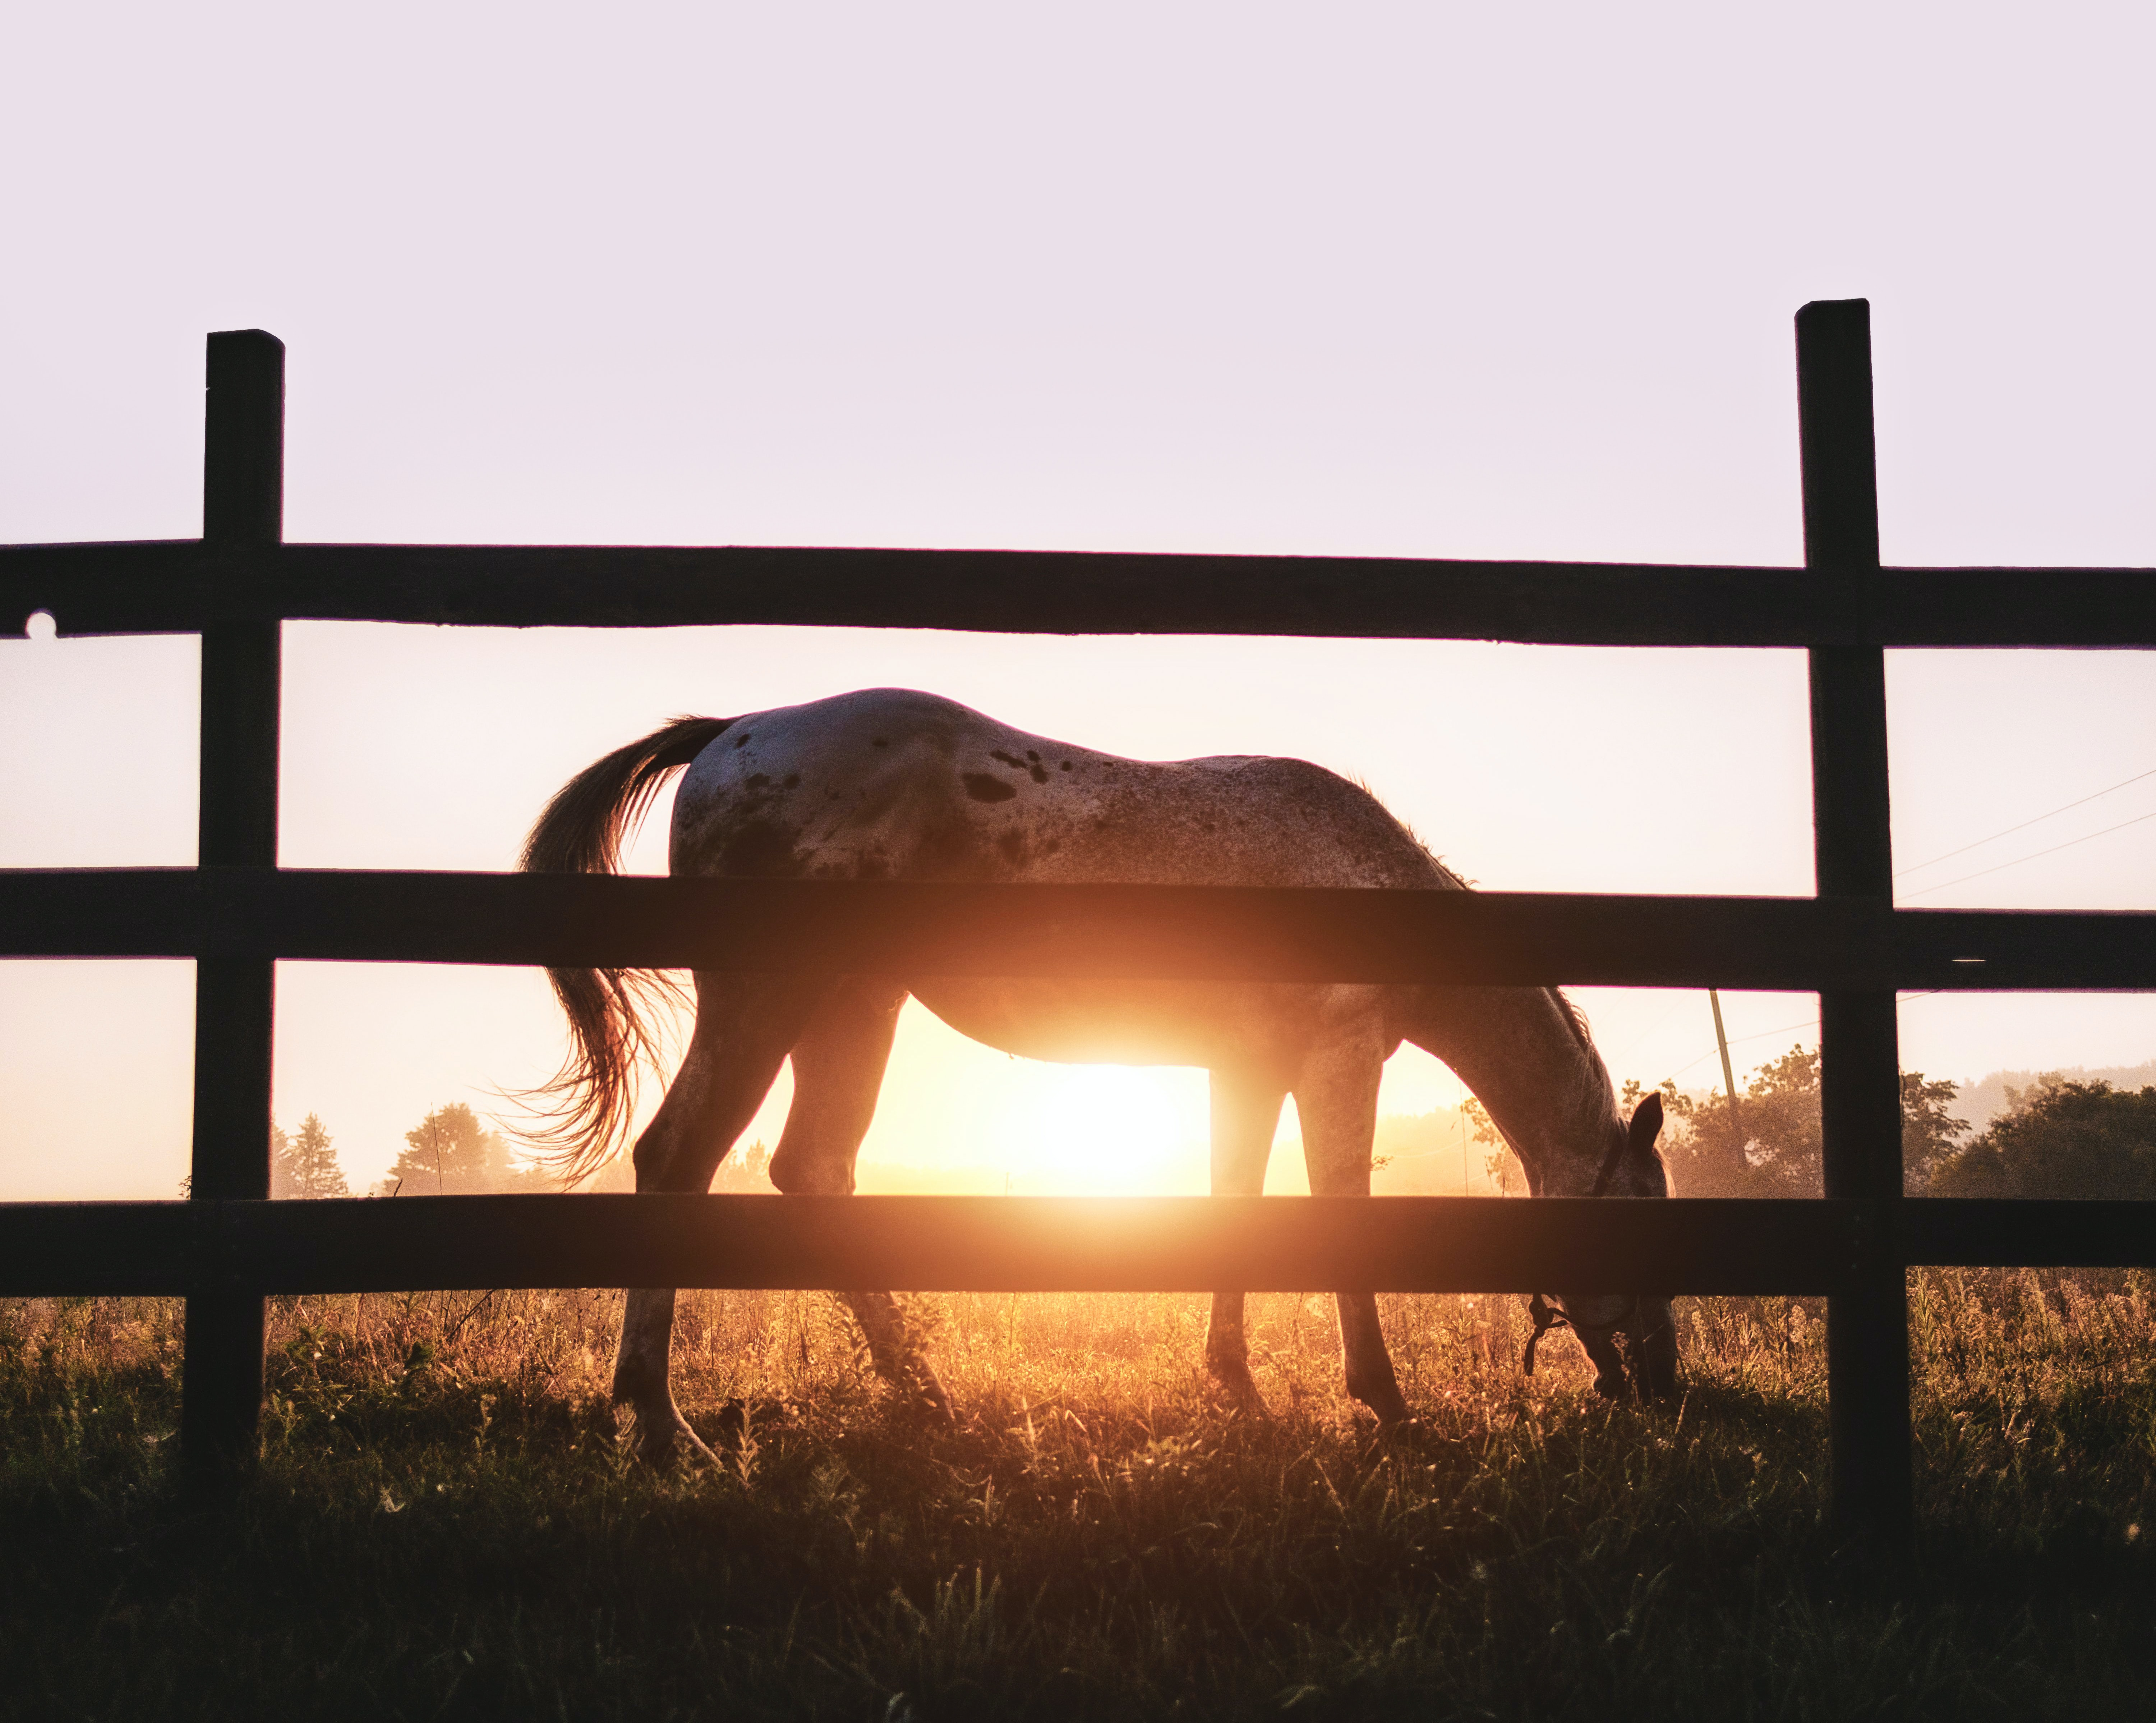 silhouette of brown and gray horse near wooden fence during golden hour